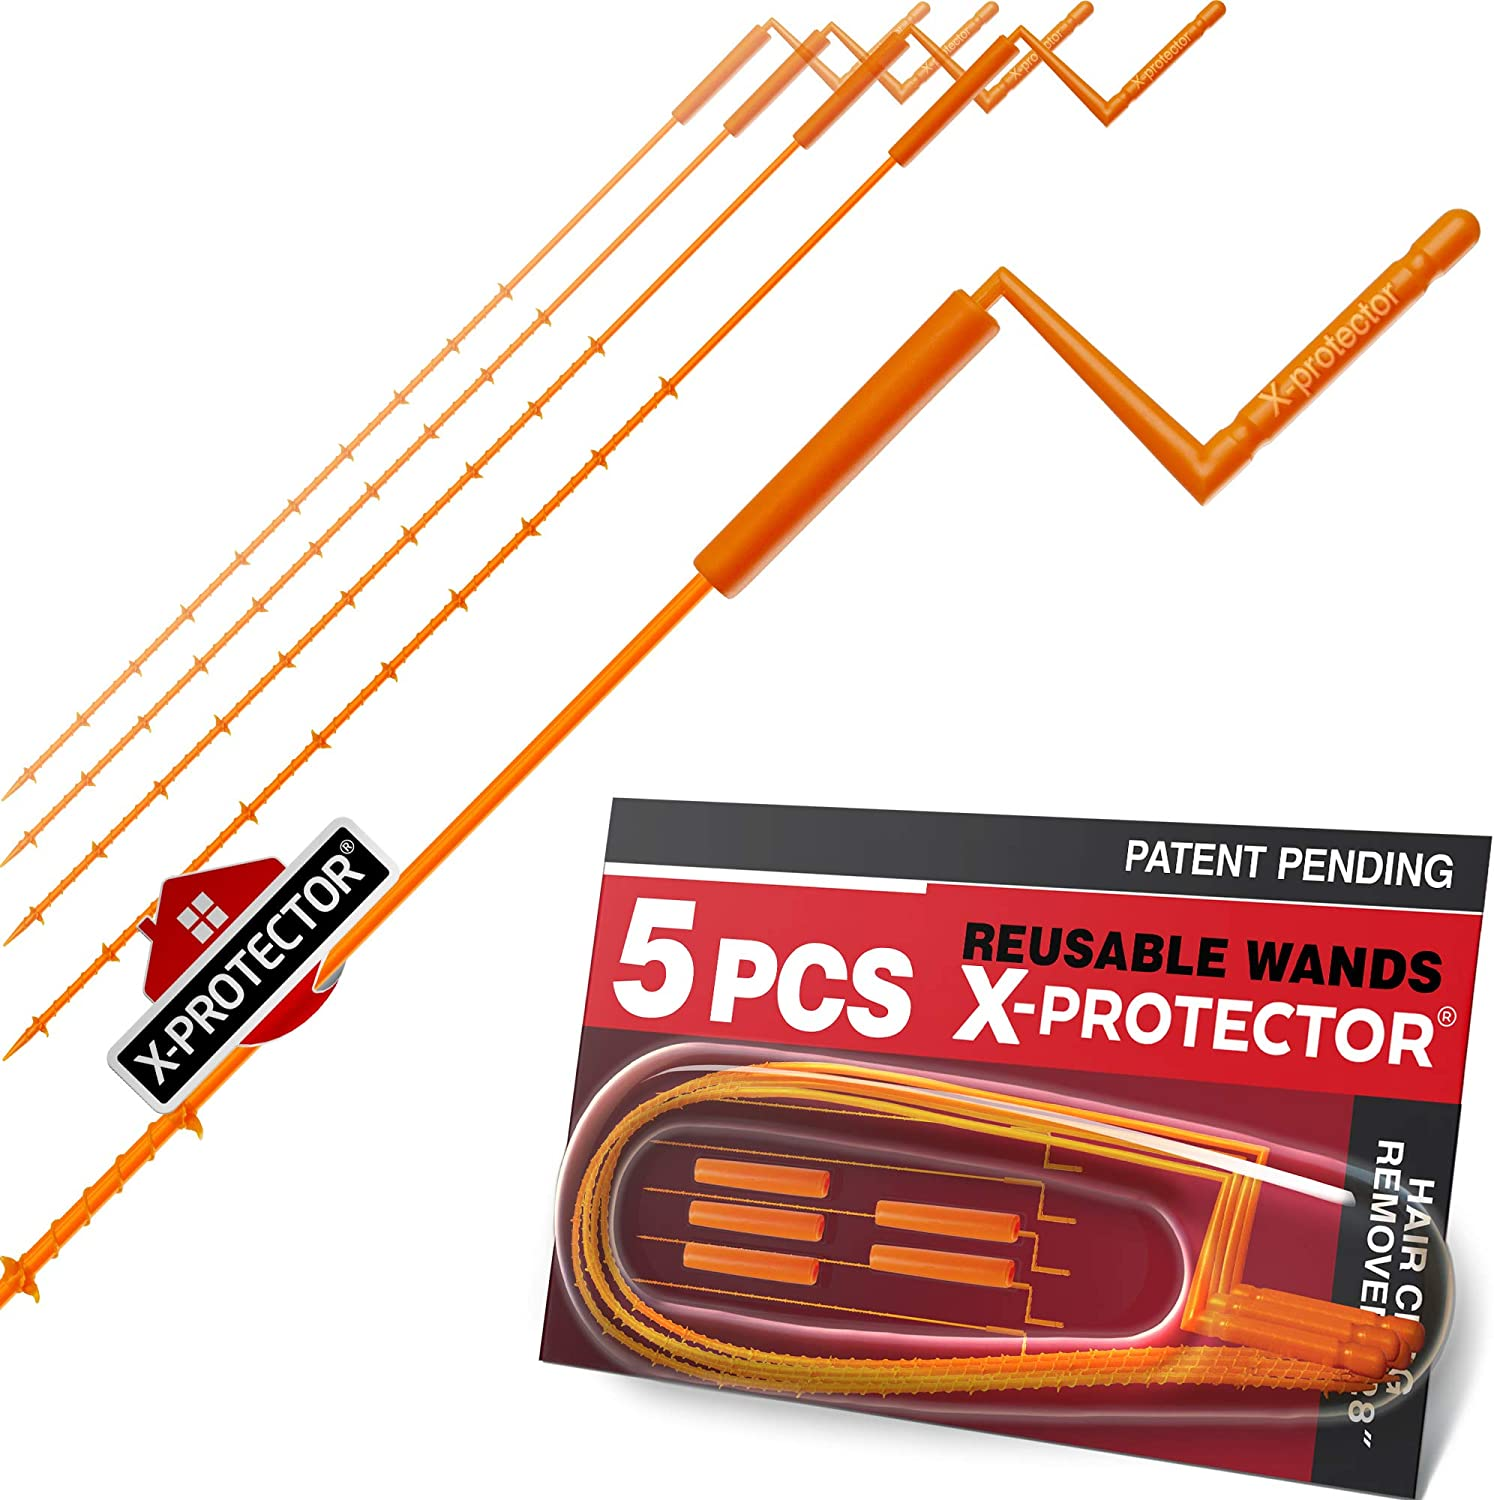 "X-PROTECTOR DRAIN CLOG REMOVER – PREMIUM DRAIN SNAKE – 28"" Drain Cleaner – 5 pcs Hair Clog Removers – Drain Hair Catcher with Rotating Handle – Orange Sink Drain Snakes – TOTAL DRAIN CLEANING!"